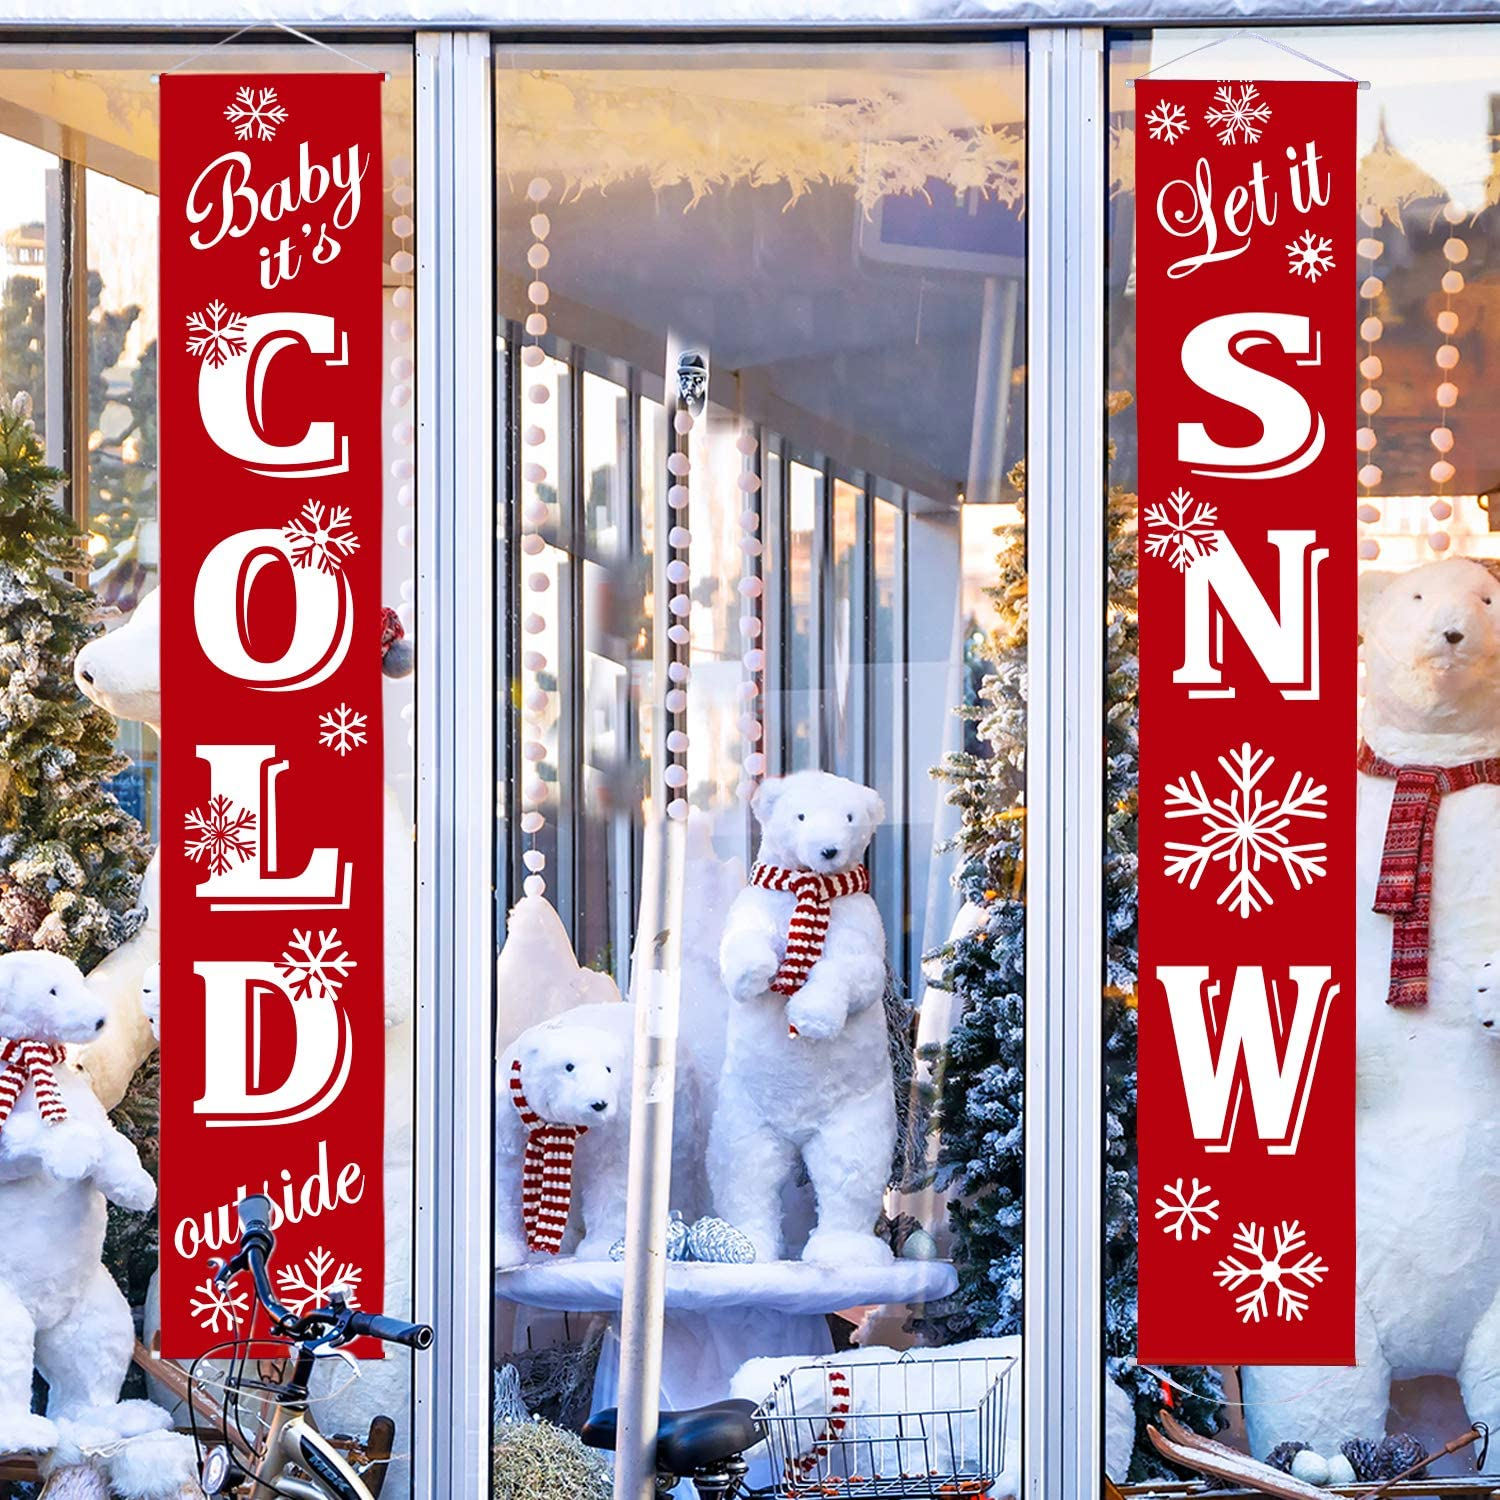 Winter Porch Sign Baby It's Cold Outside/Let It Snow Banner Snowflake Wall Decoration Snowflake Window Decal Hanging Decoration for Winter Party Decoration Snowflake Holiday Party (Red White Baby It'